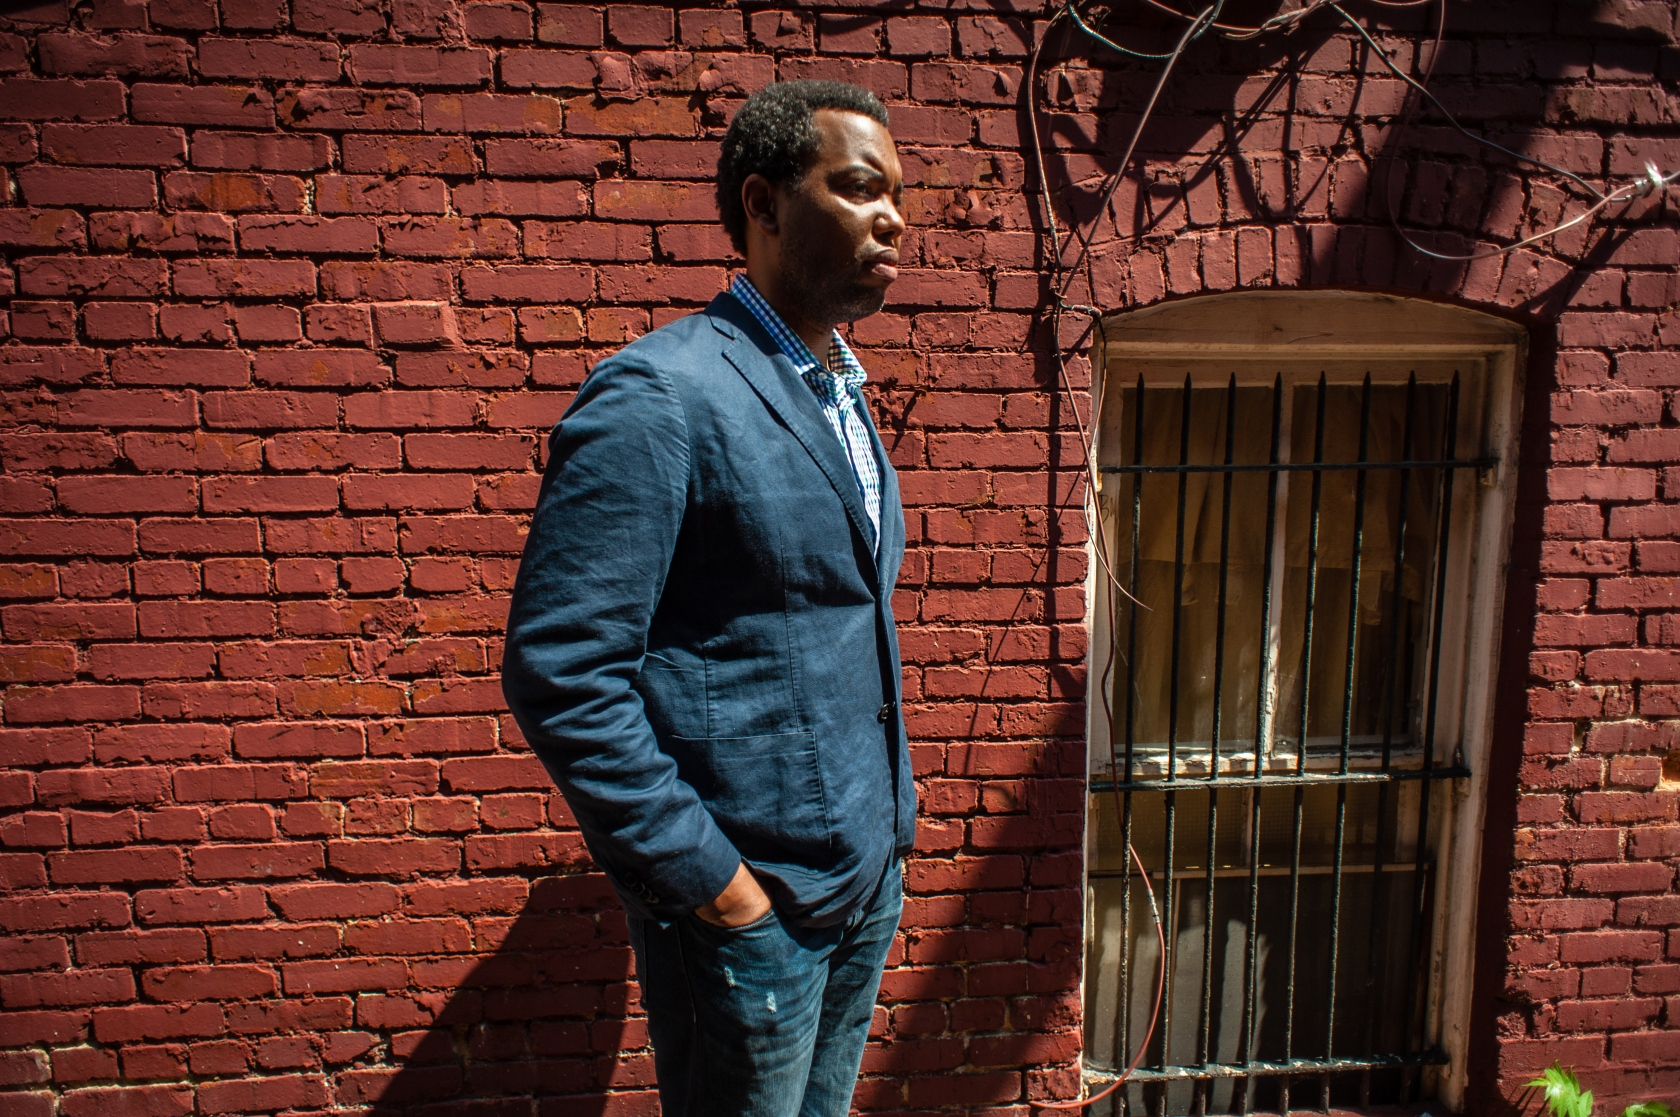 Ta-Nehisi Coates, National Correspondent for The Atlantic Magazine, wrote the cover piece about reparations in this month's issue...